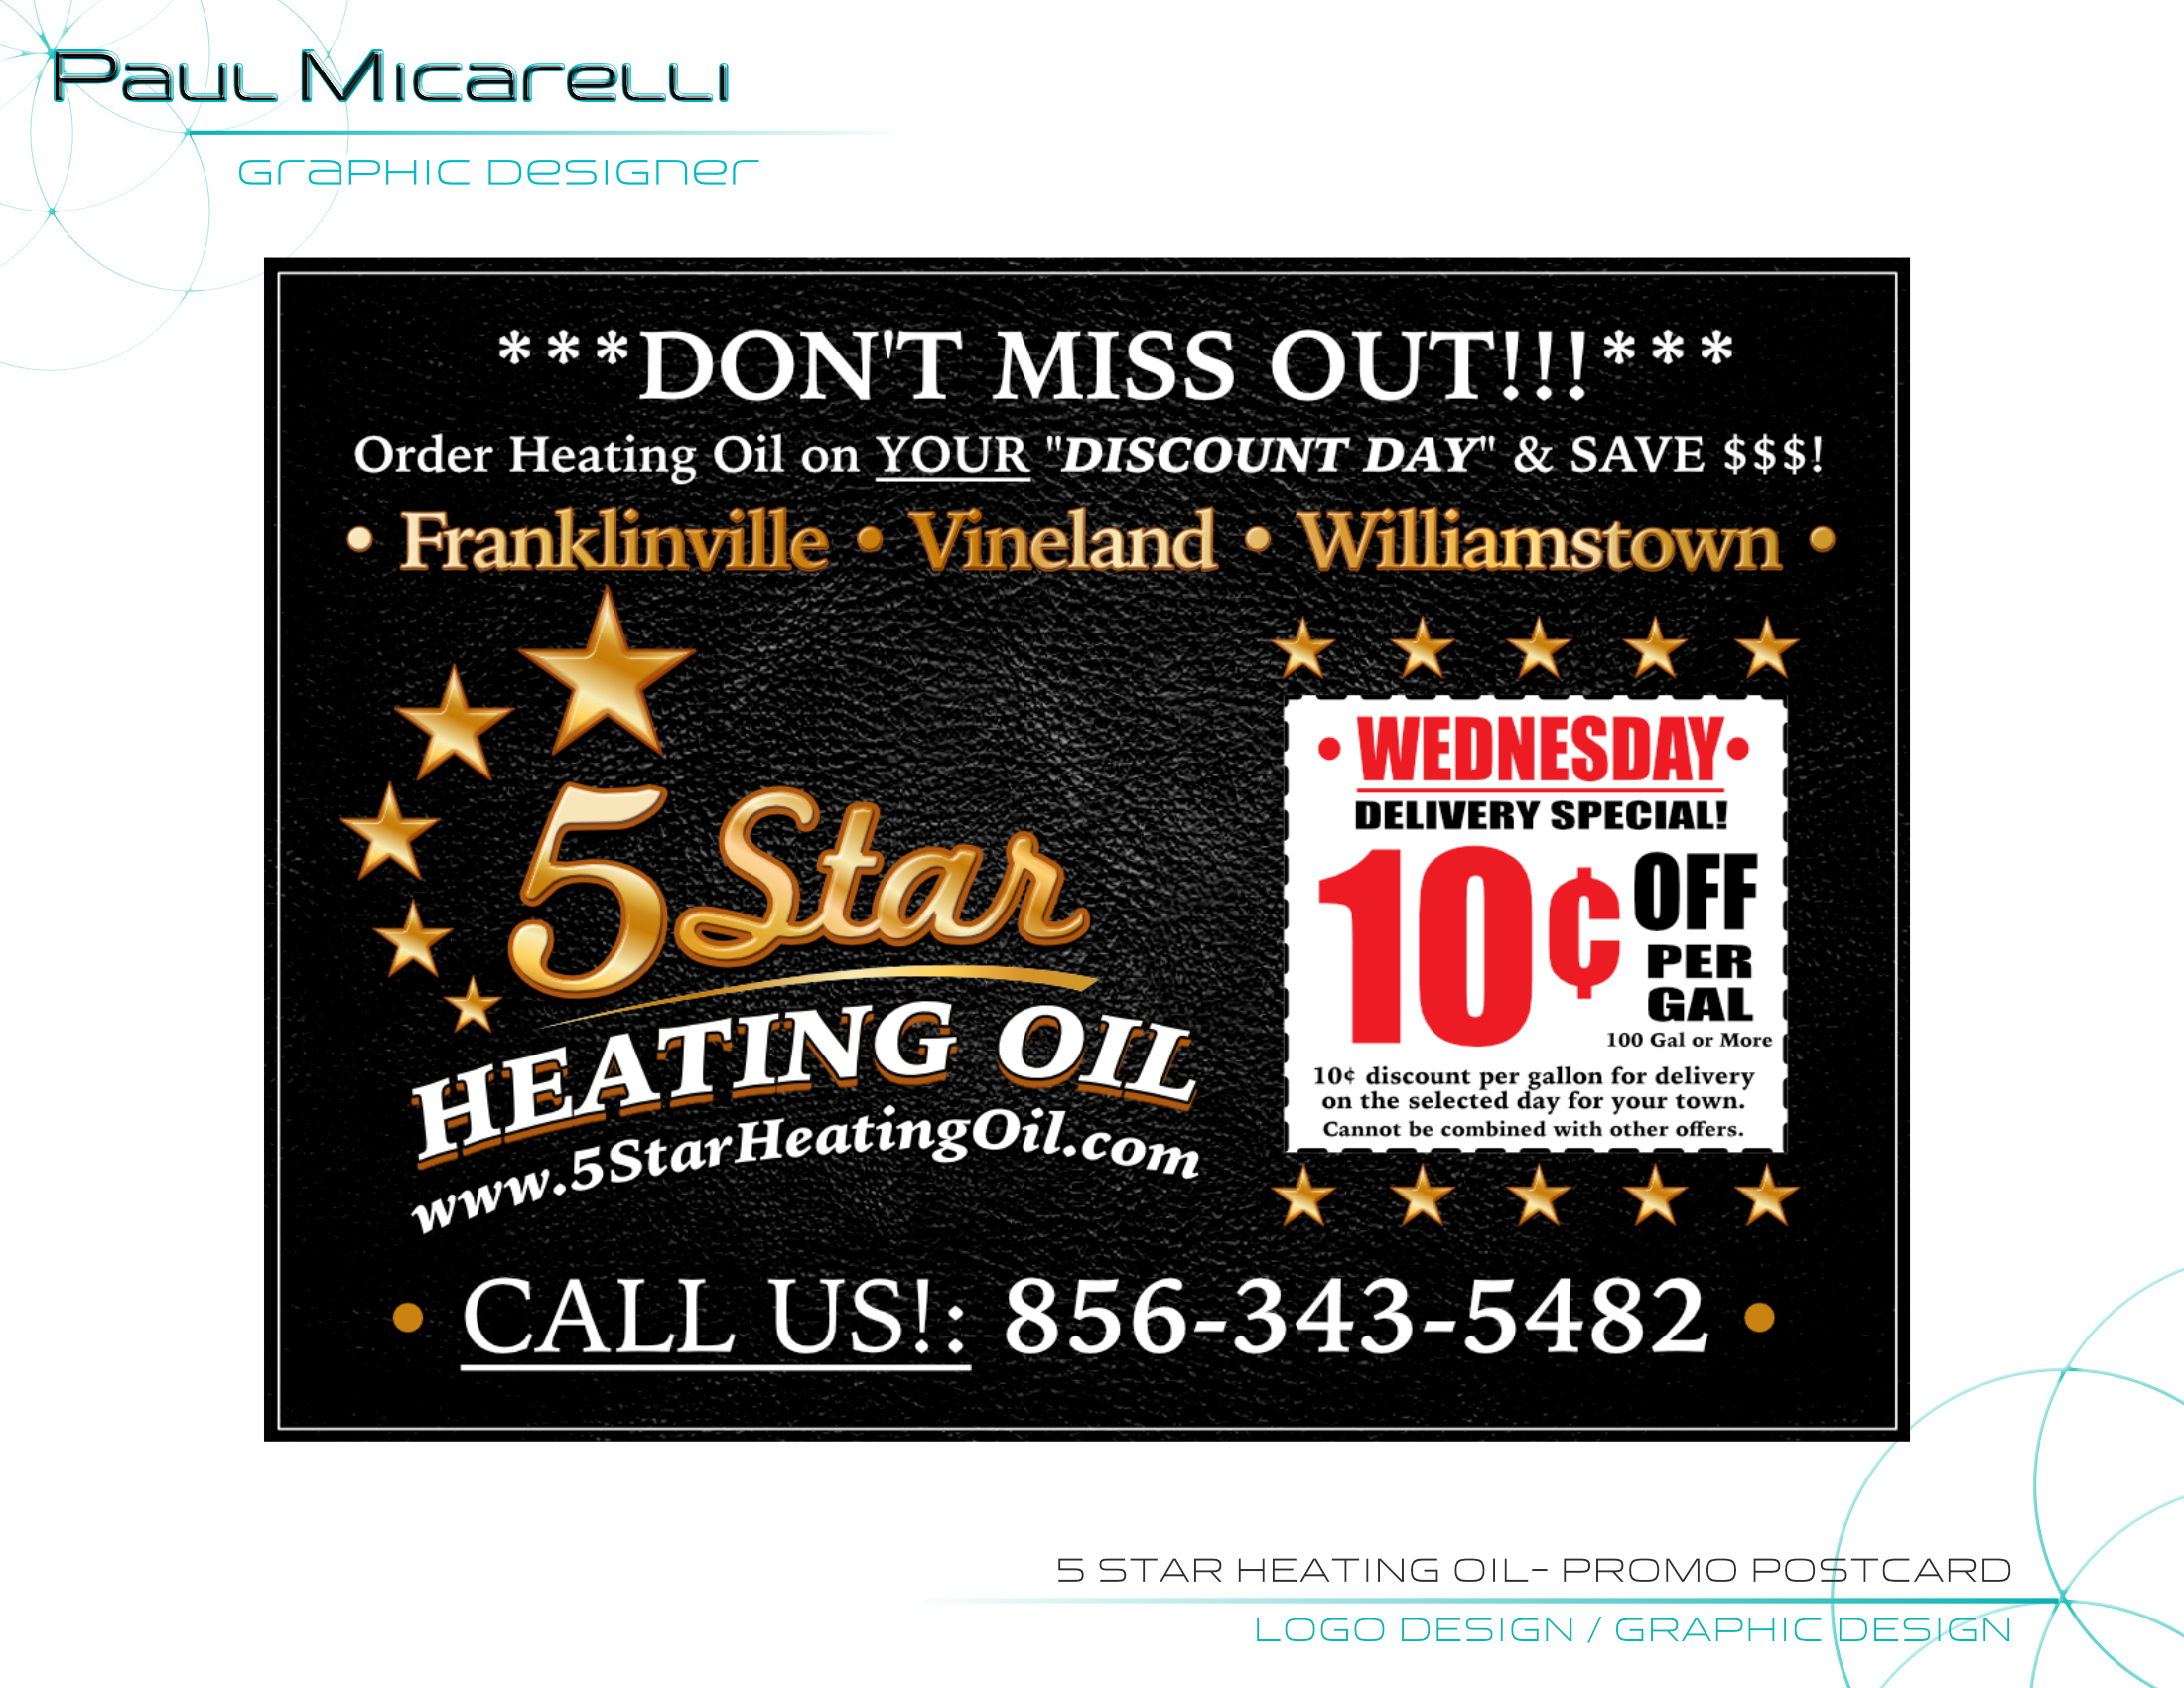 Paul-Micarelli-5 Star Heating Oil-Promo